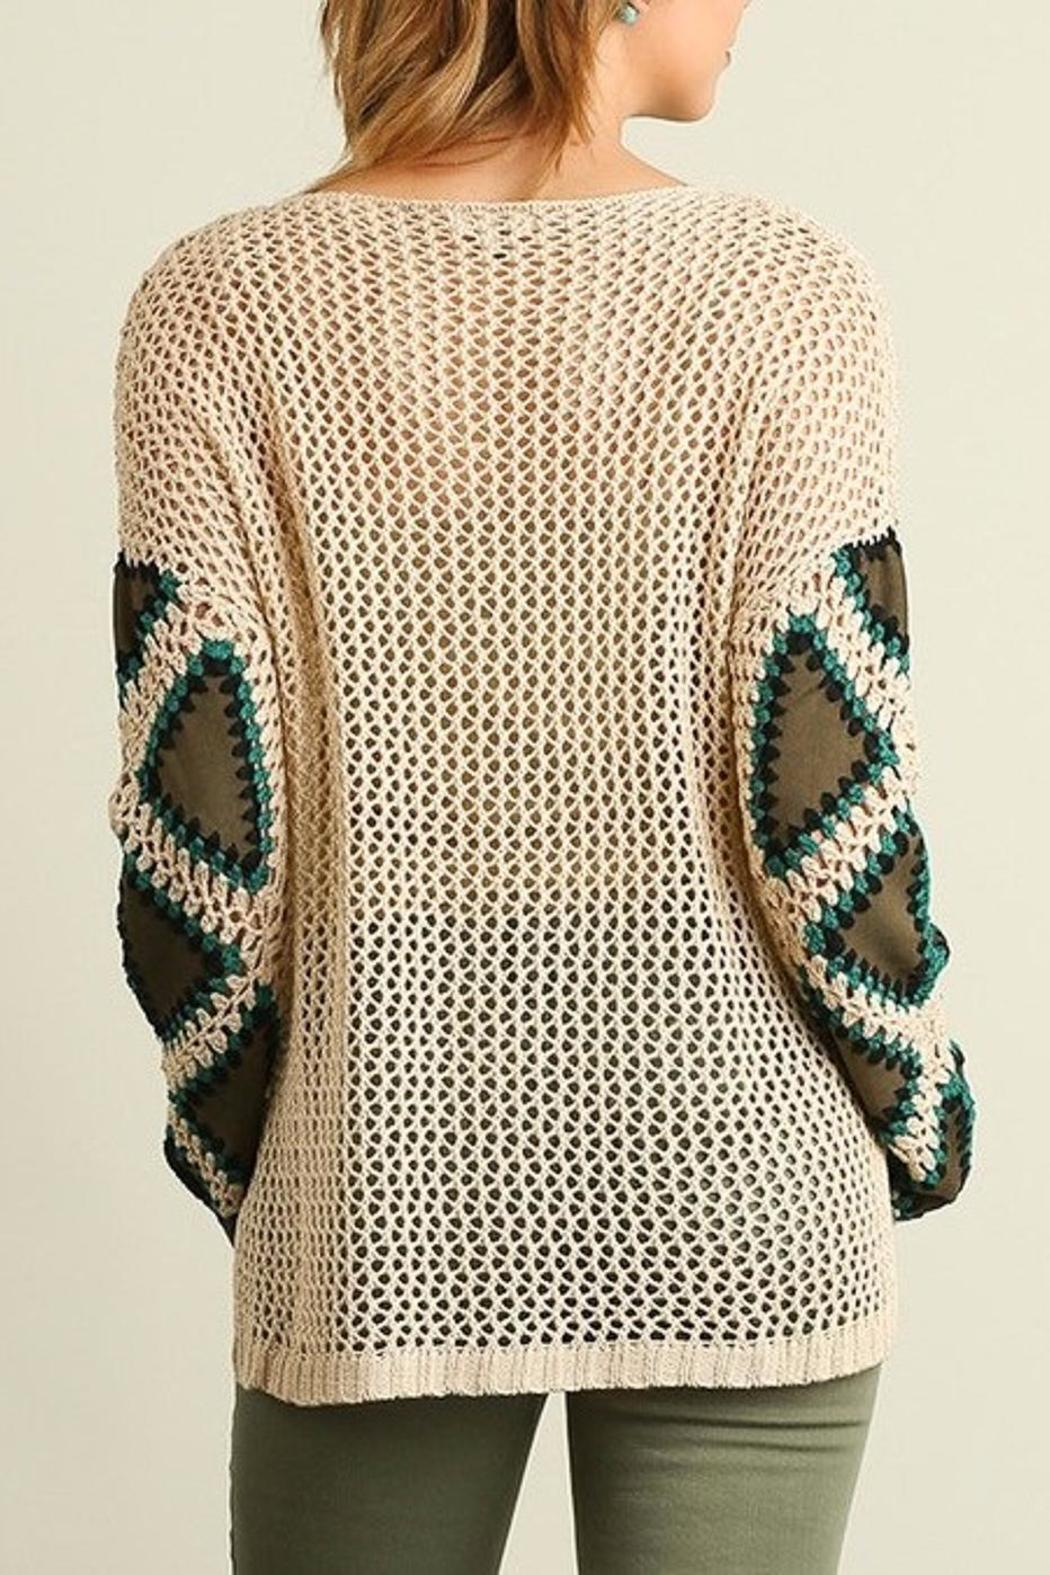 People Outfitter Patch Me Sweater - Side Cropped Image